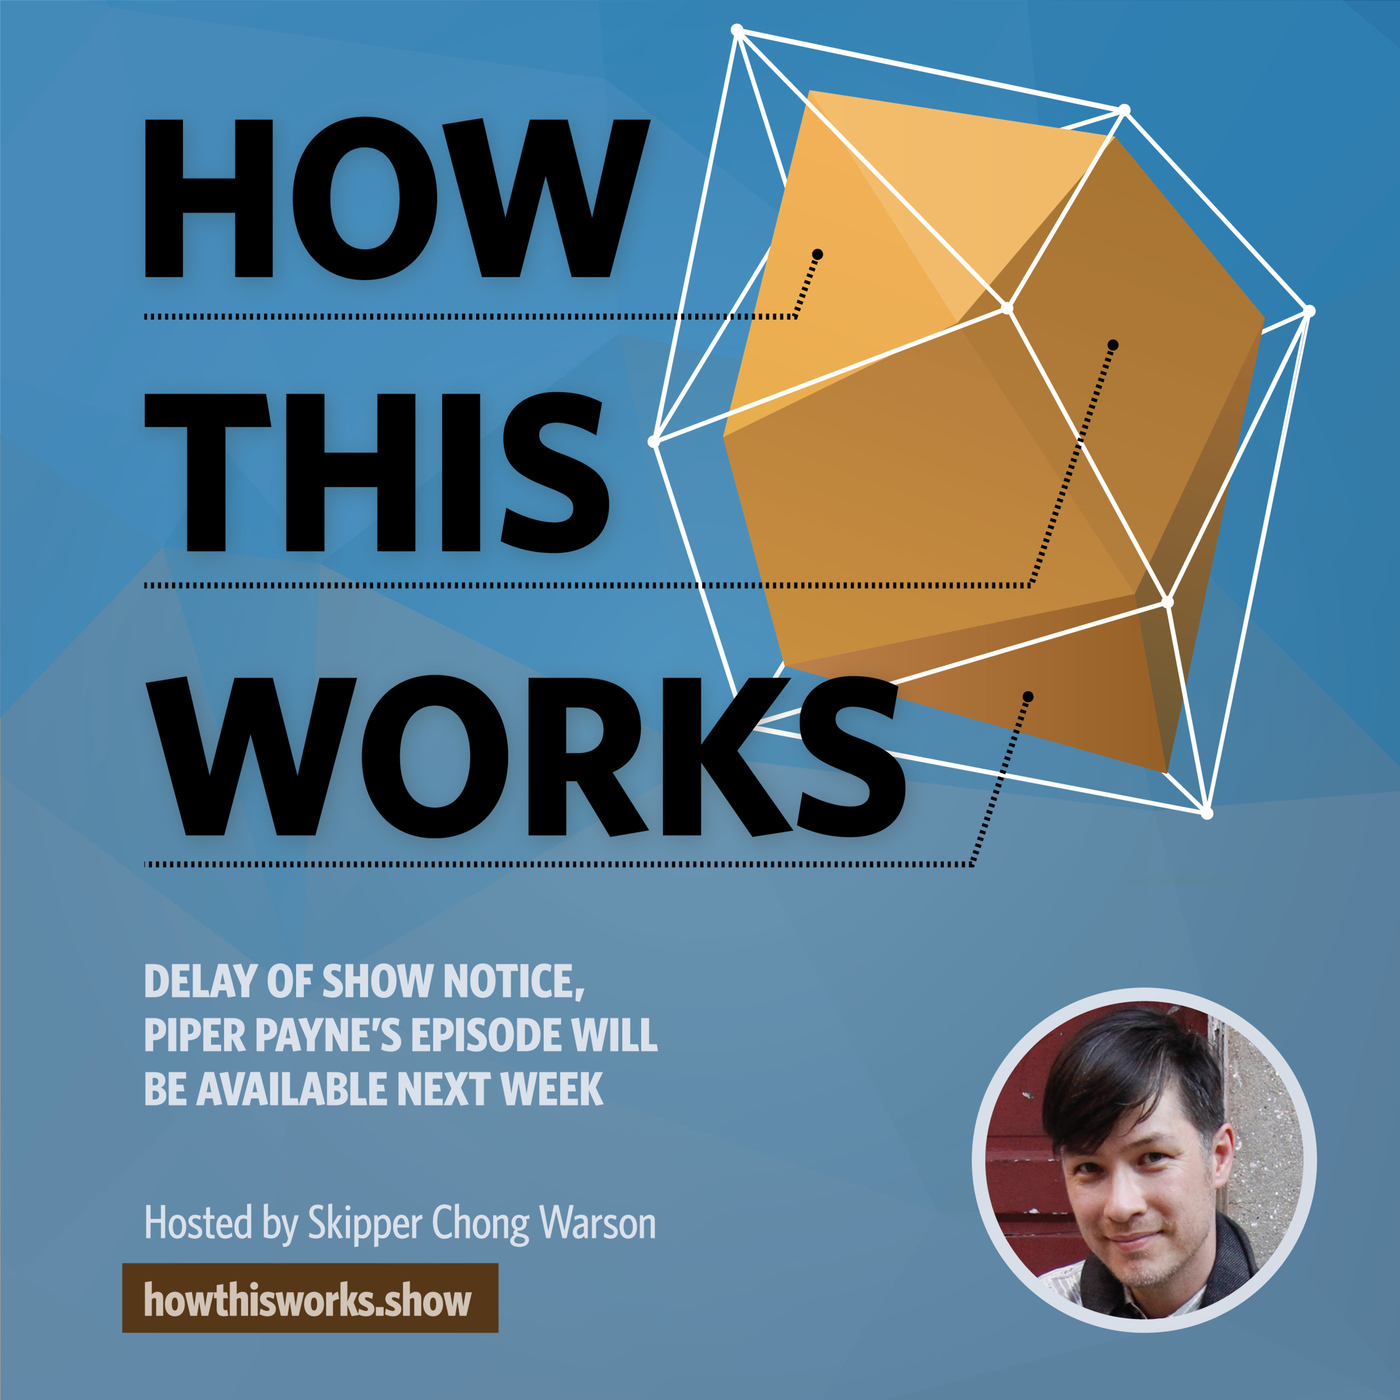 How This Works delay-of-show-12-04-2021: Delay of show